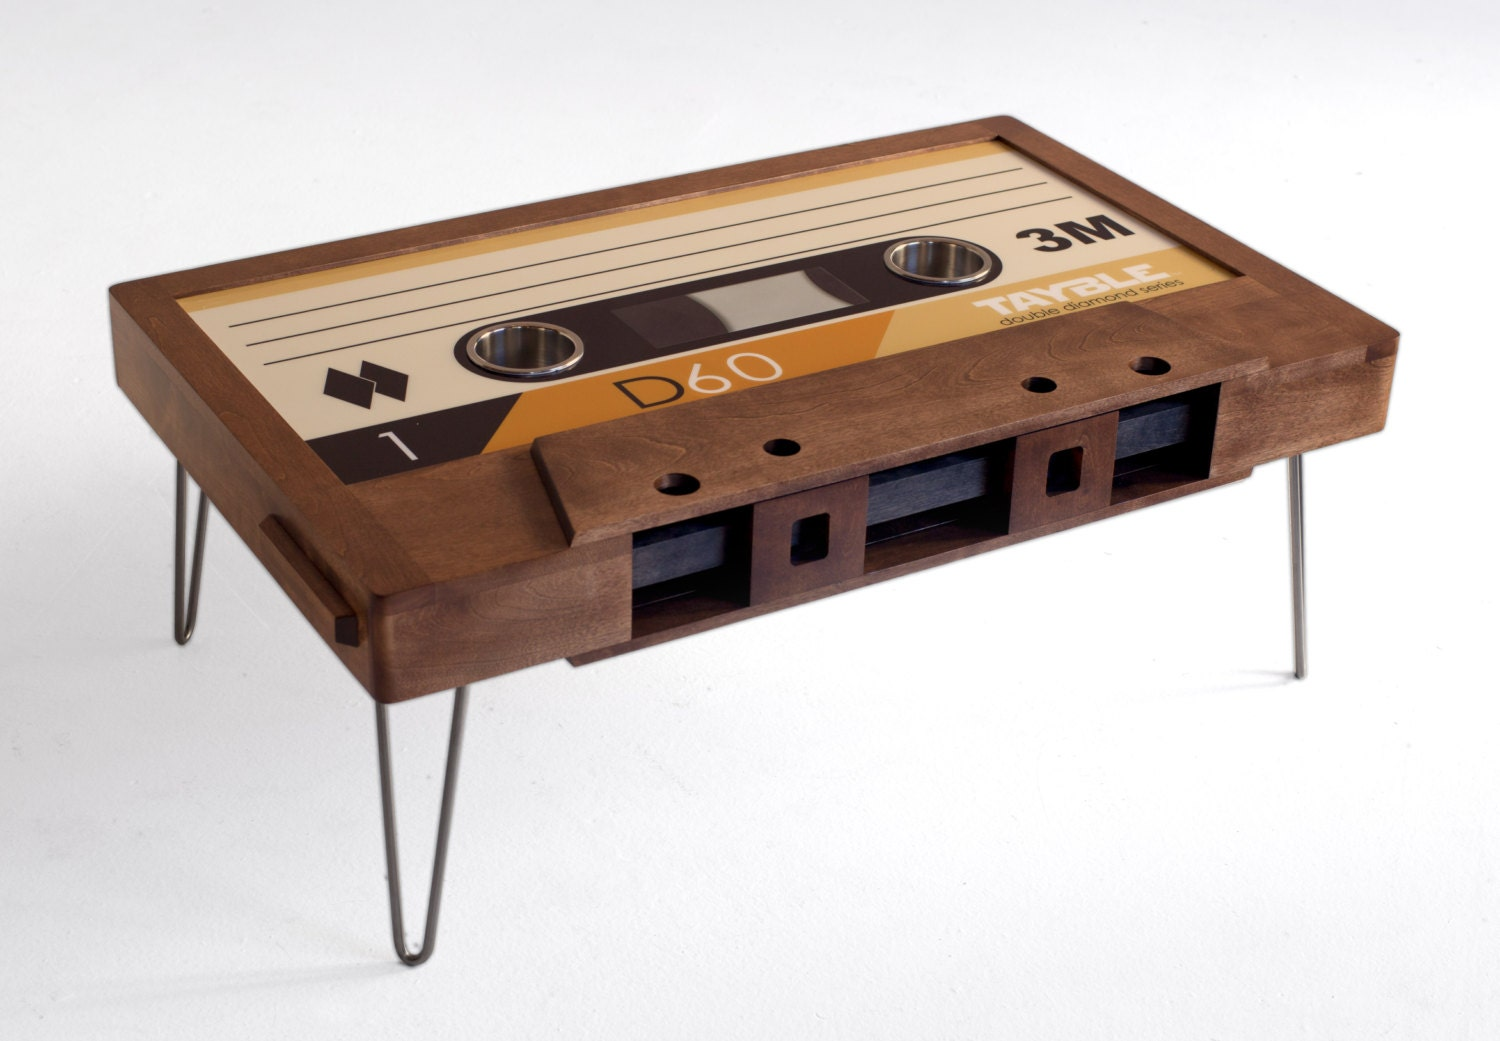 Double Diamond Cassette Tape Coffee Table - 214Graffiti